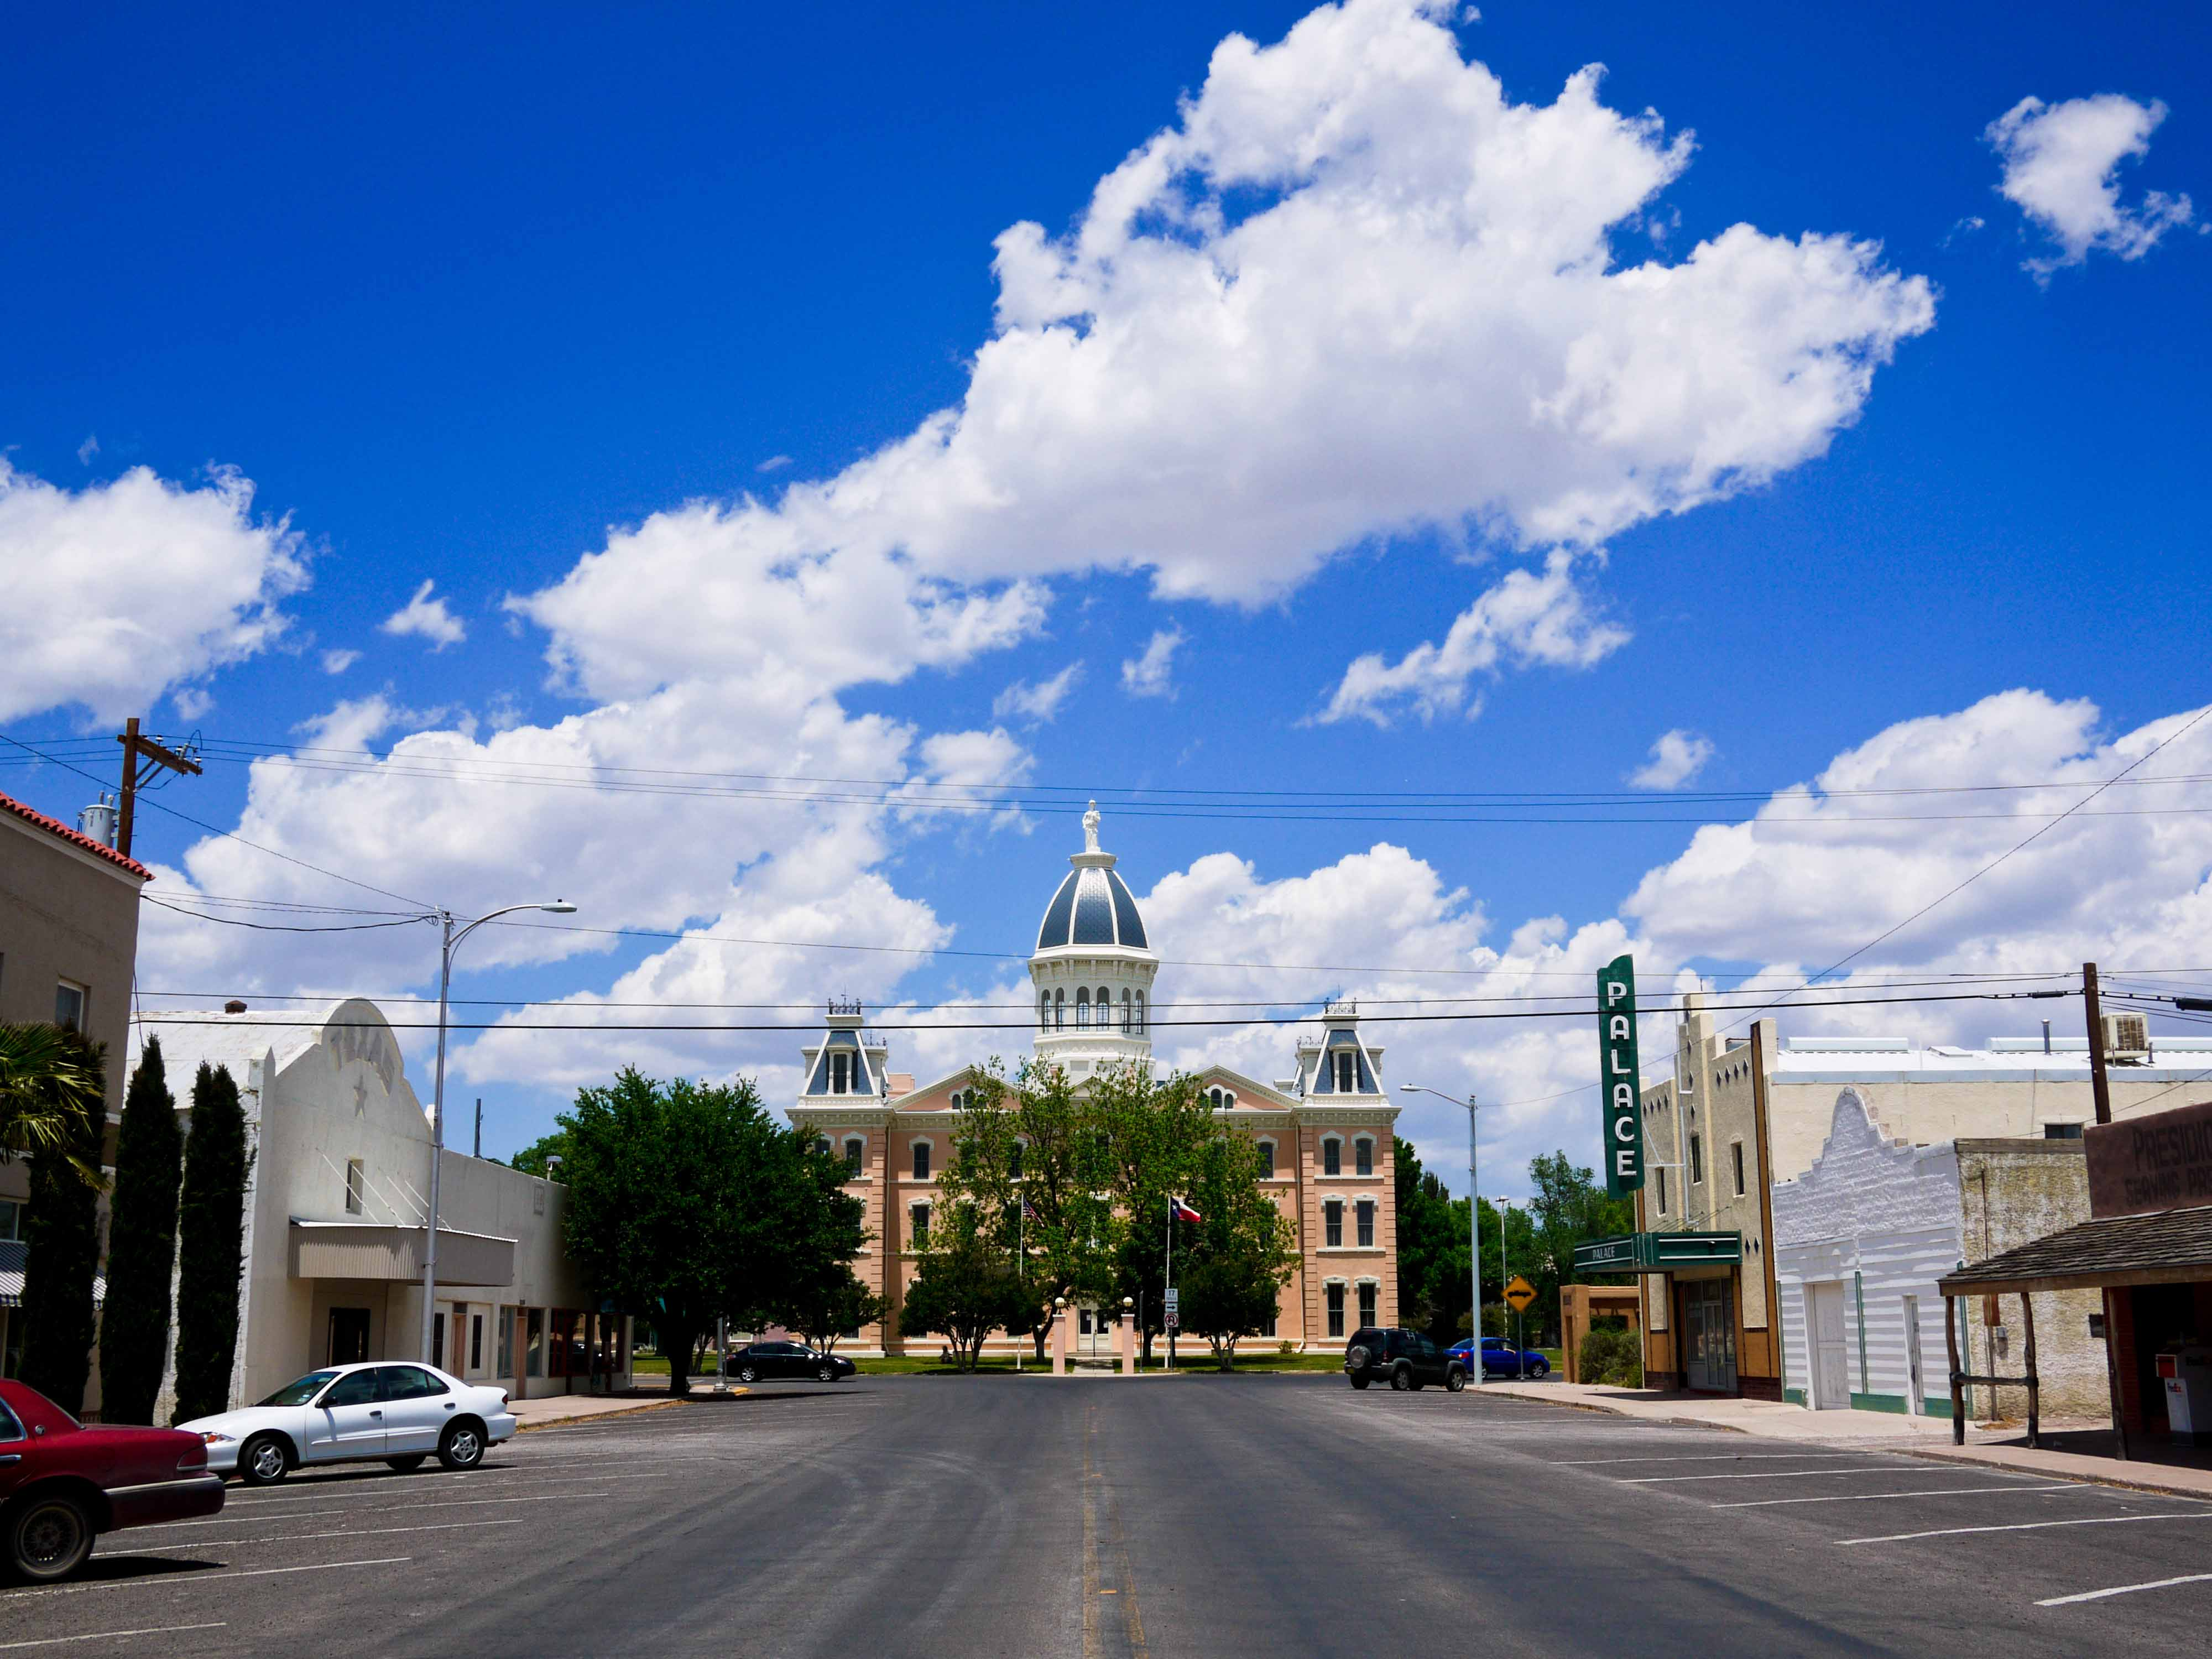 Marfa Tx Courthouse Downtown Dispatch From